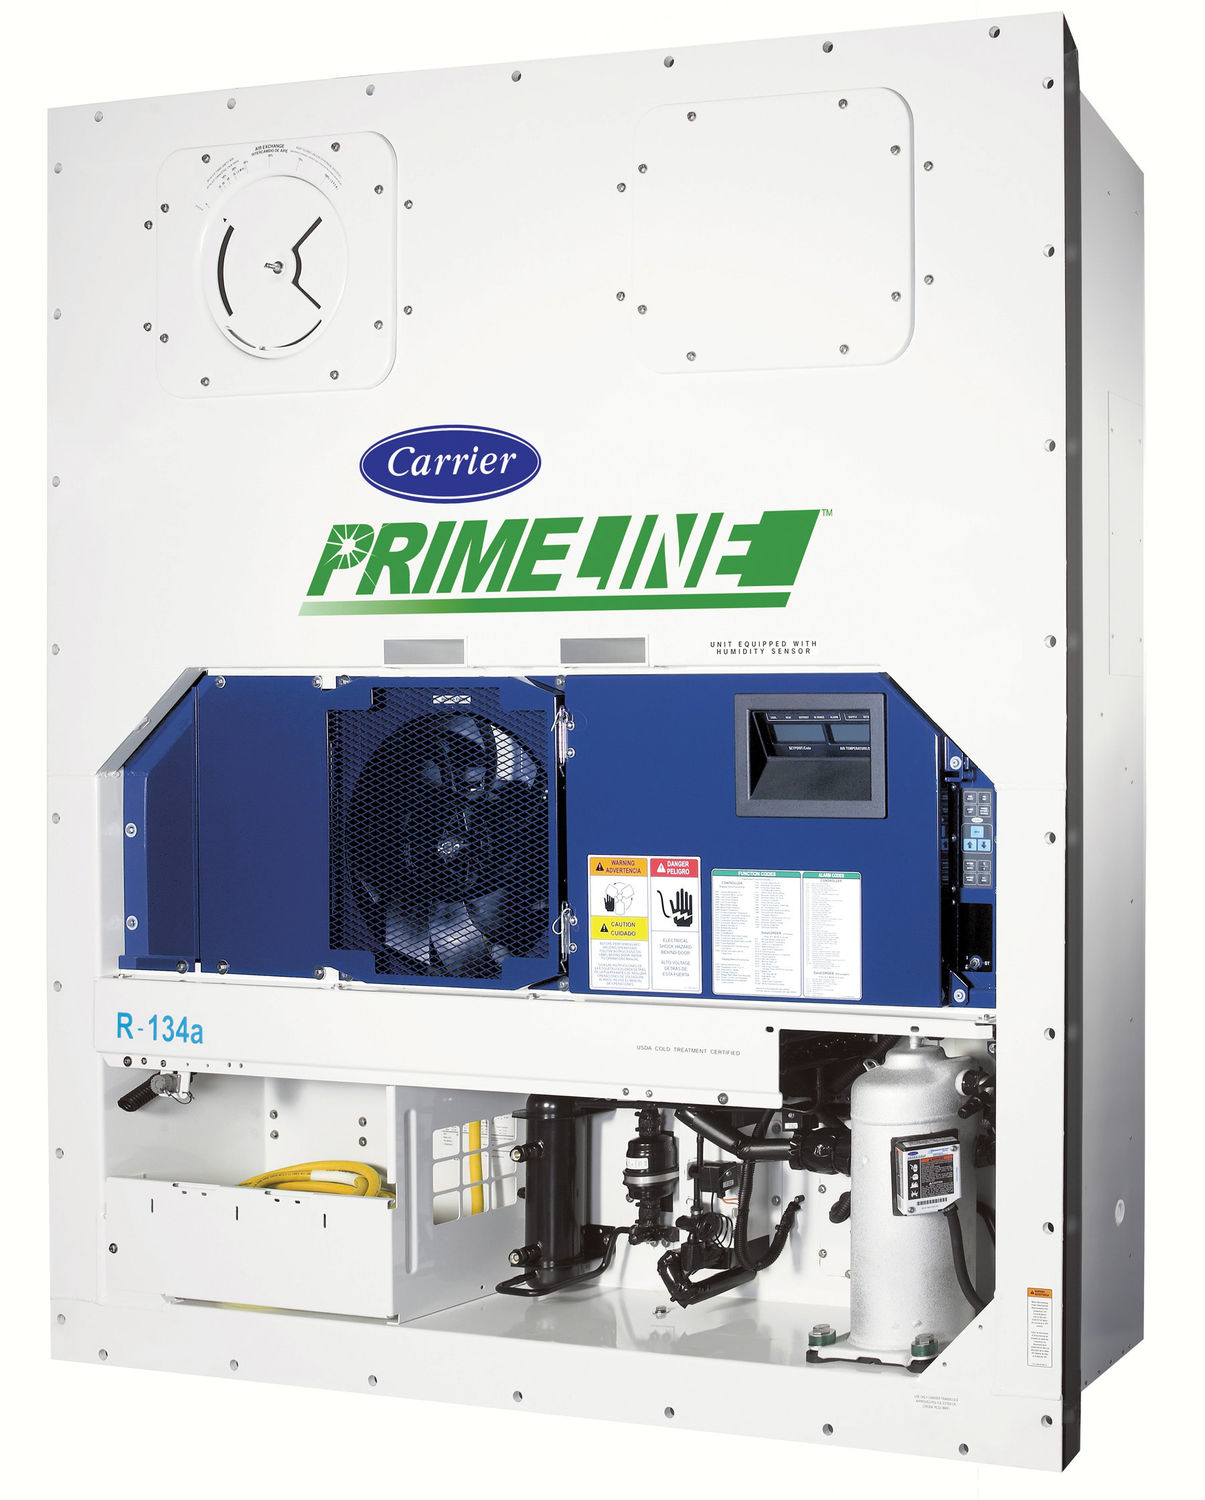 carrier reefer unit. Mobile Refrigeration Unit / For Marine Containers Mono-temperature - PrimeLINE® Carrier Reefer